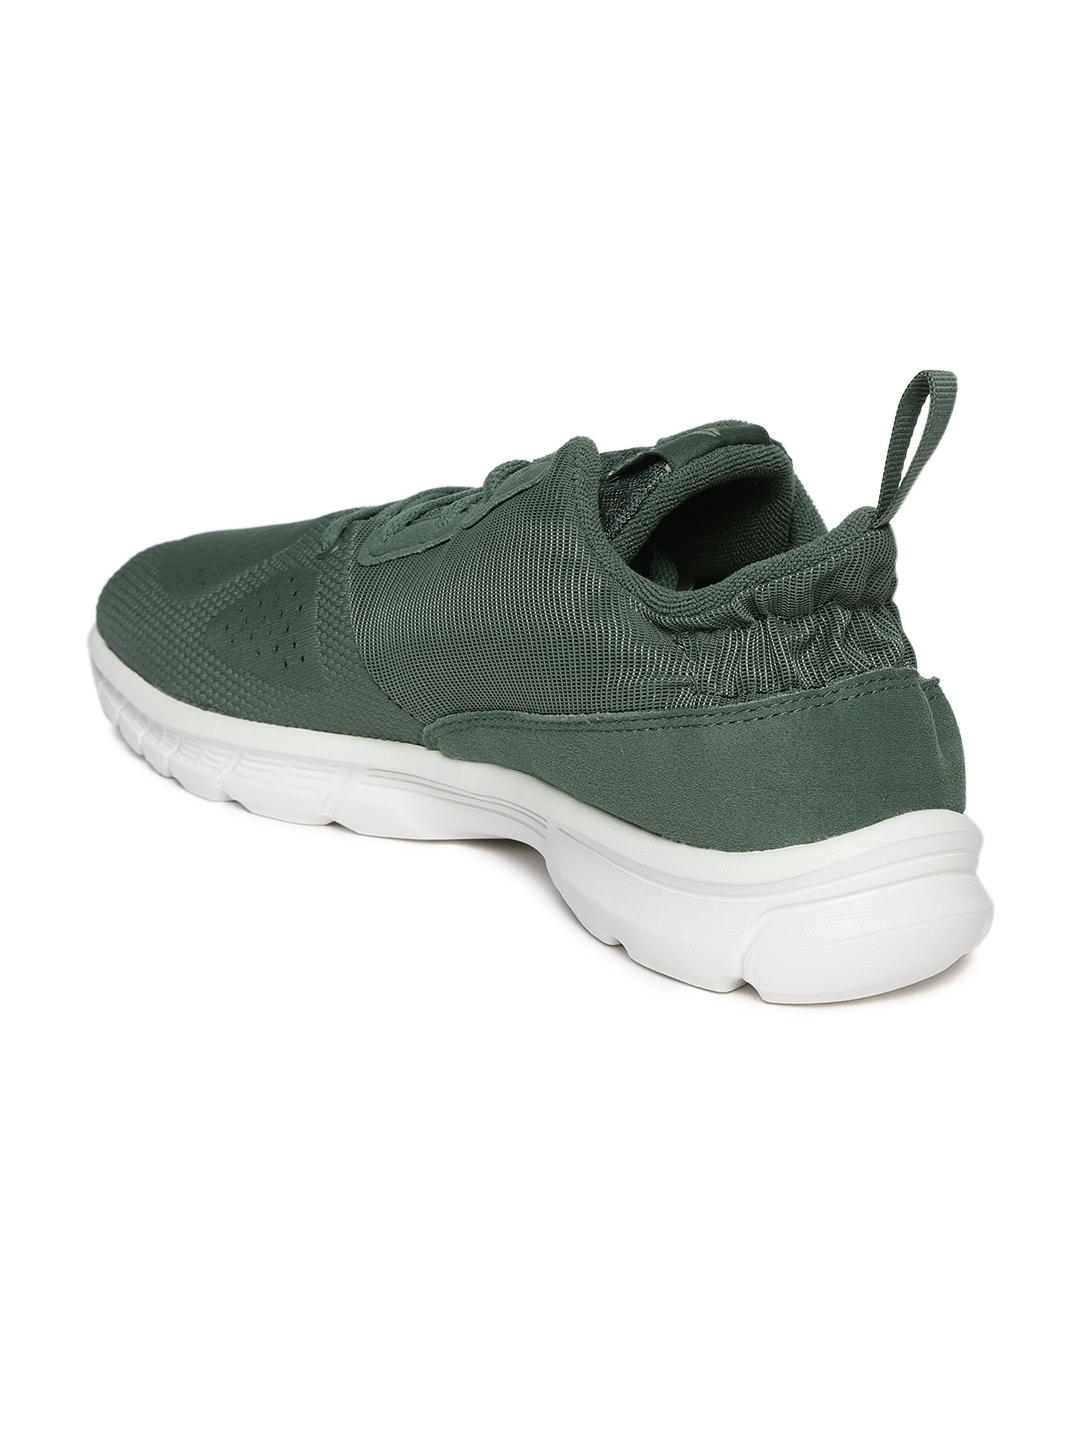 1cdbef358 Buy Reebok Men Green Aim MT Running Shoes - Sports Shoes for Men ...